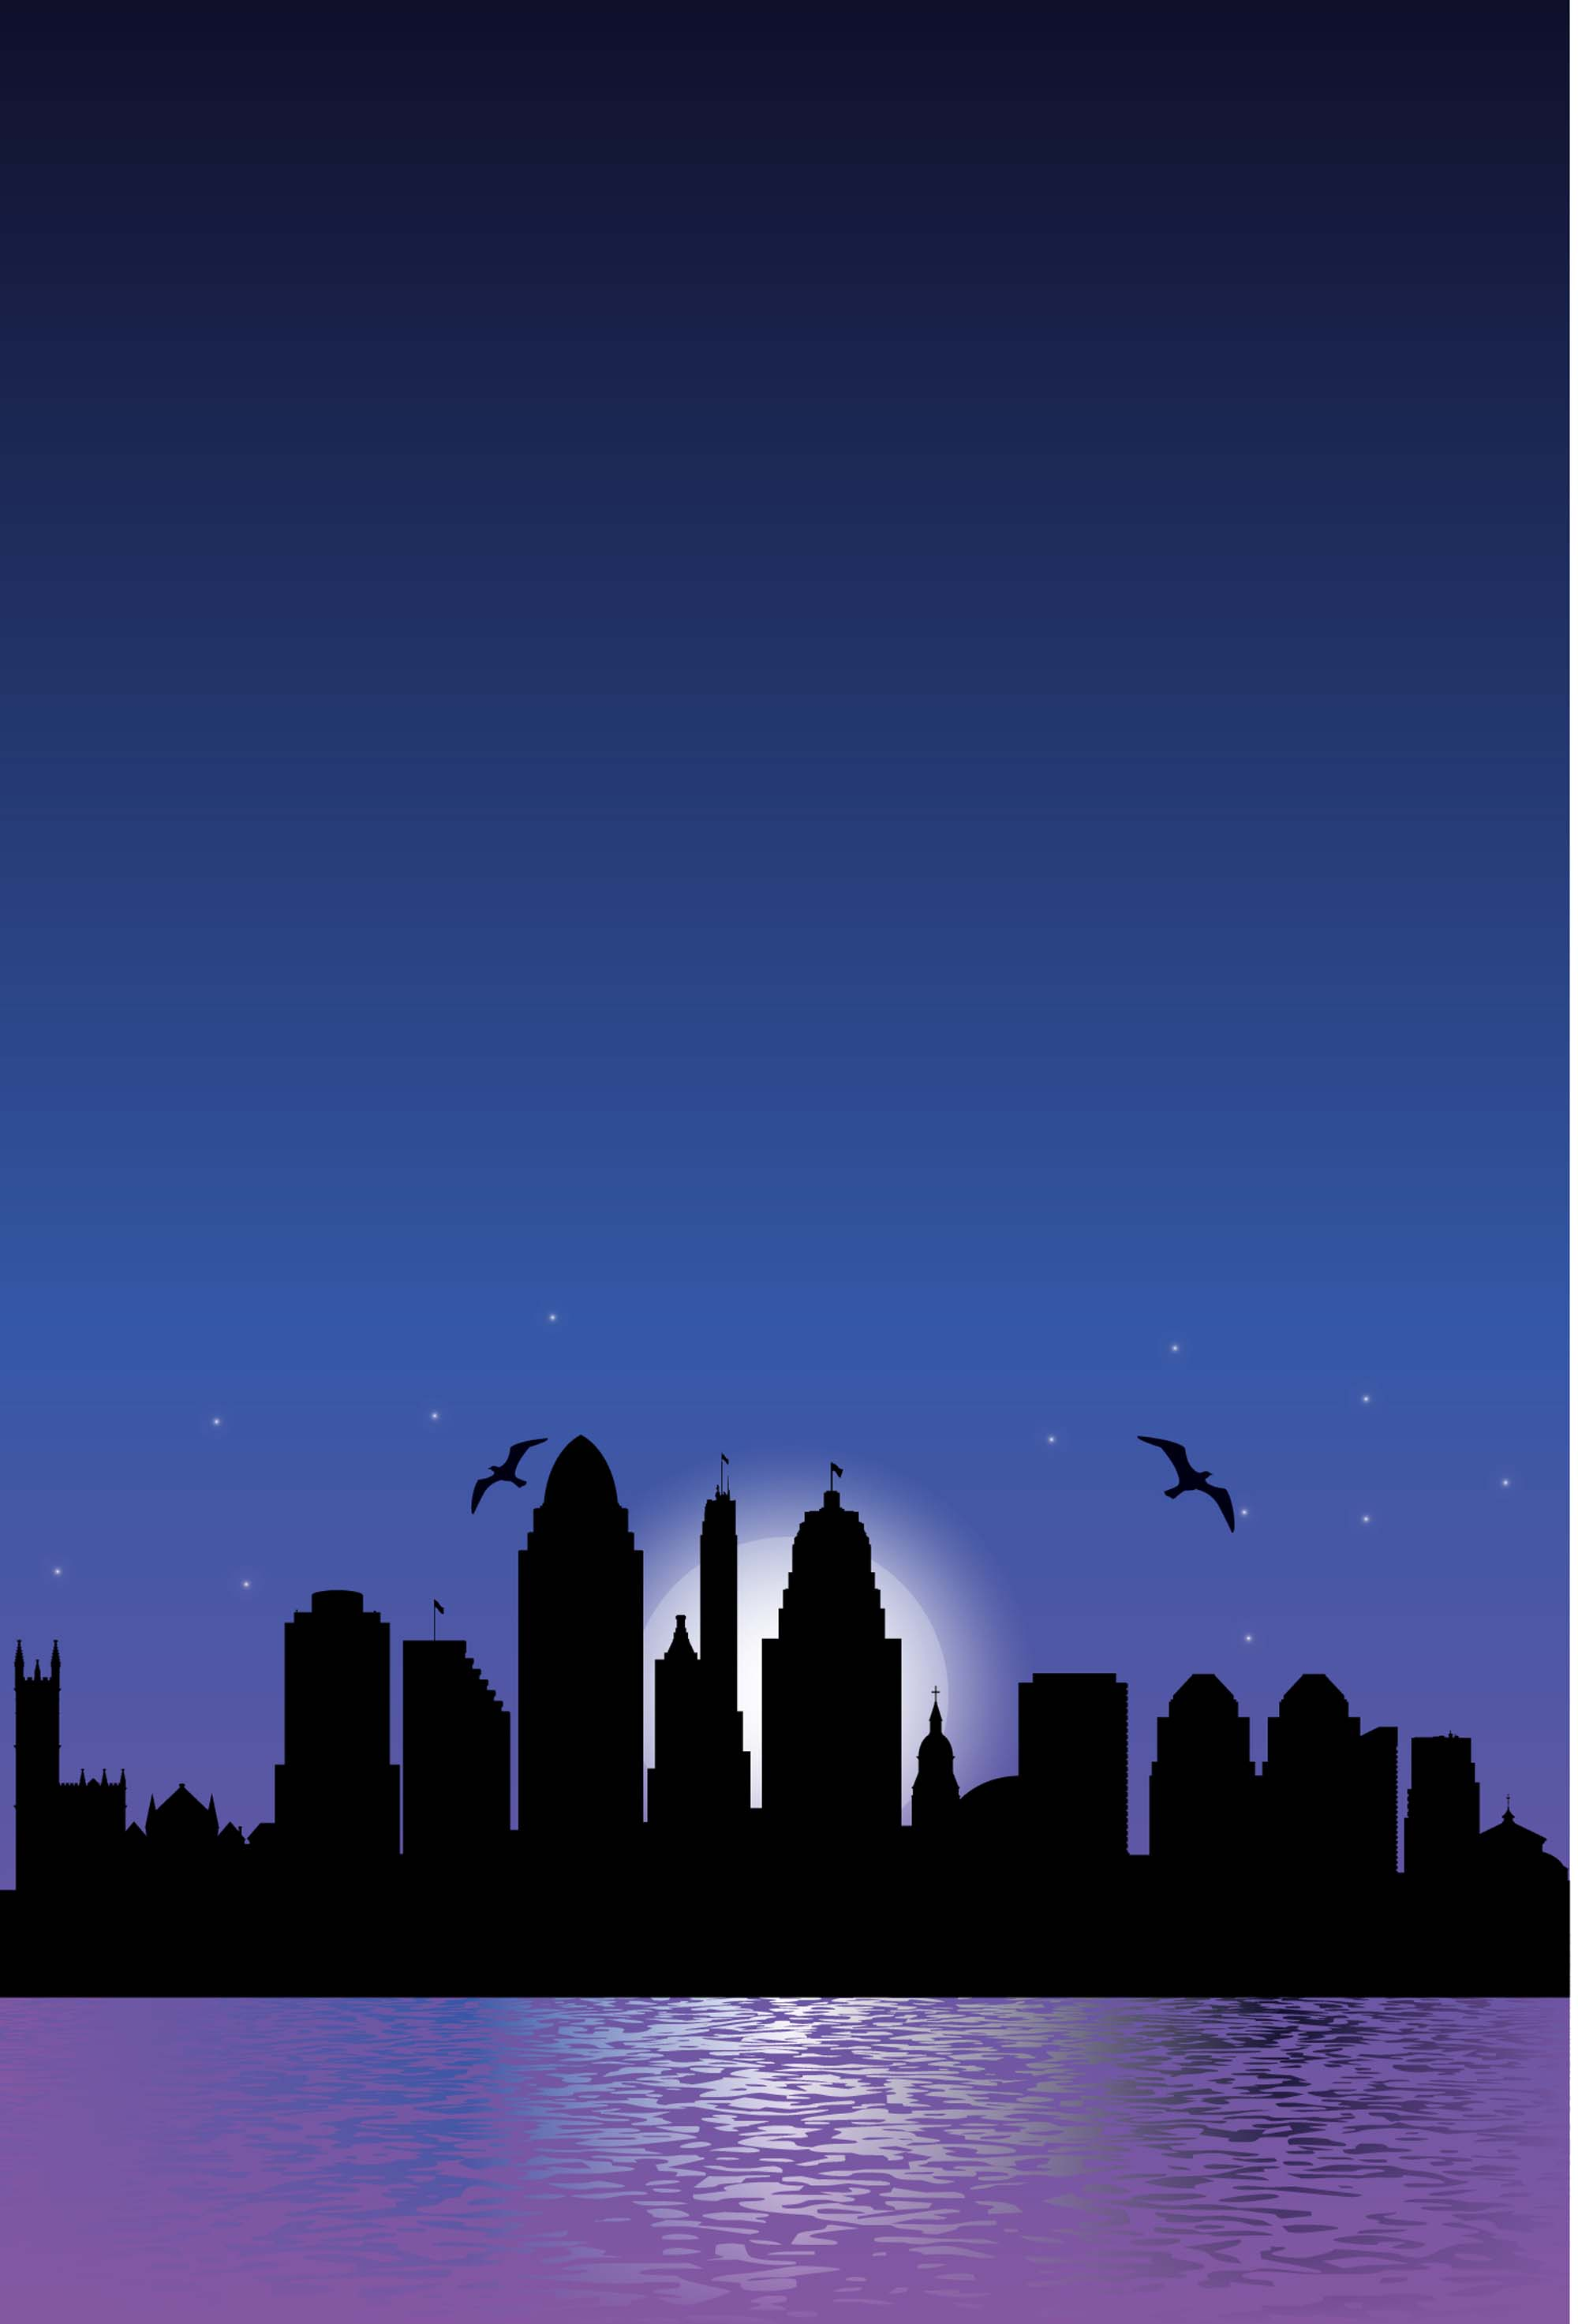 Minimalist Blue City Night Silhouette Posters Psd Layered